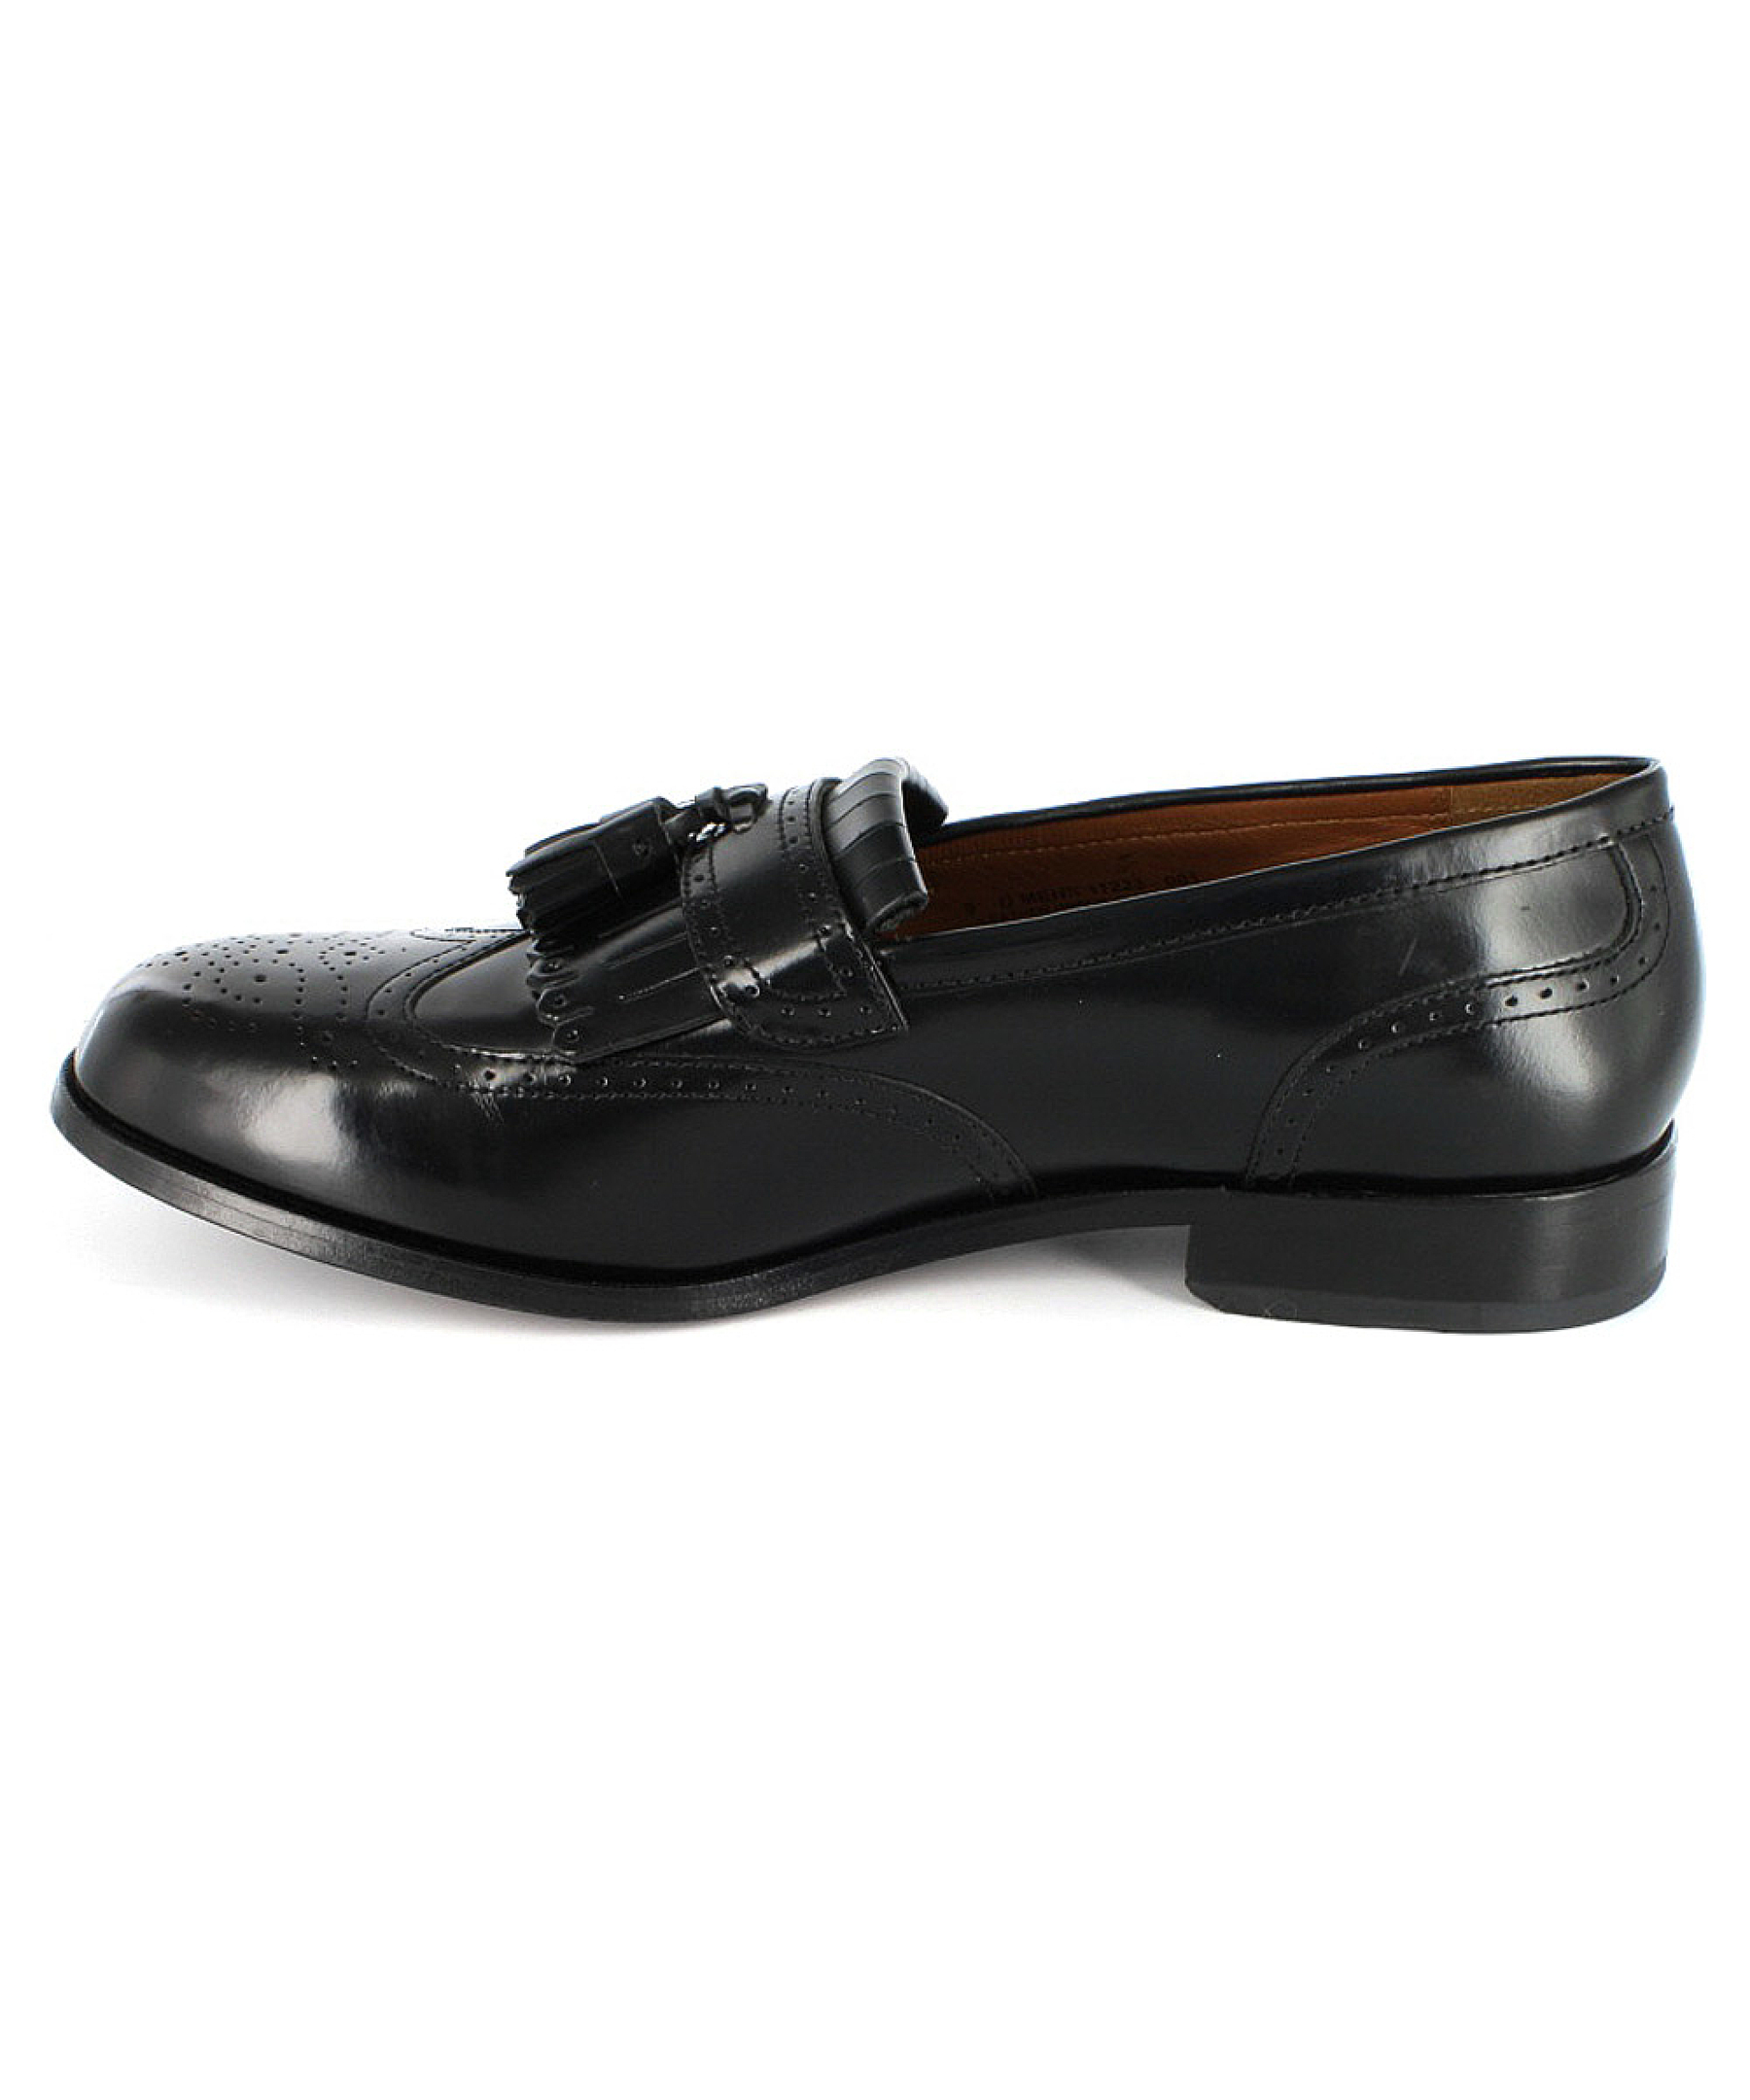 florsheim s brinson loafers shoes in black for